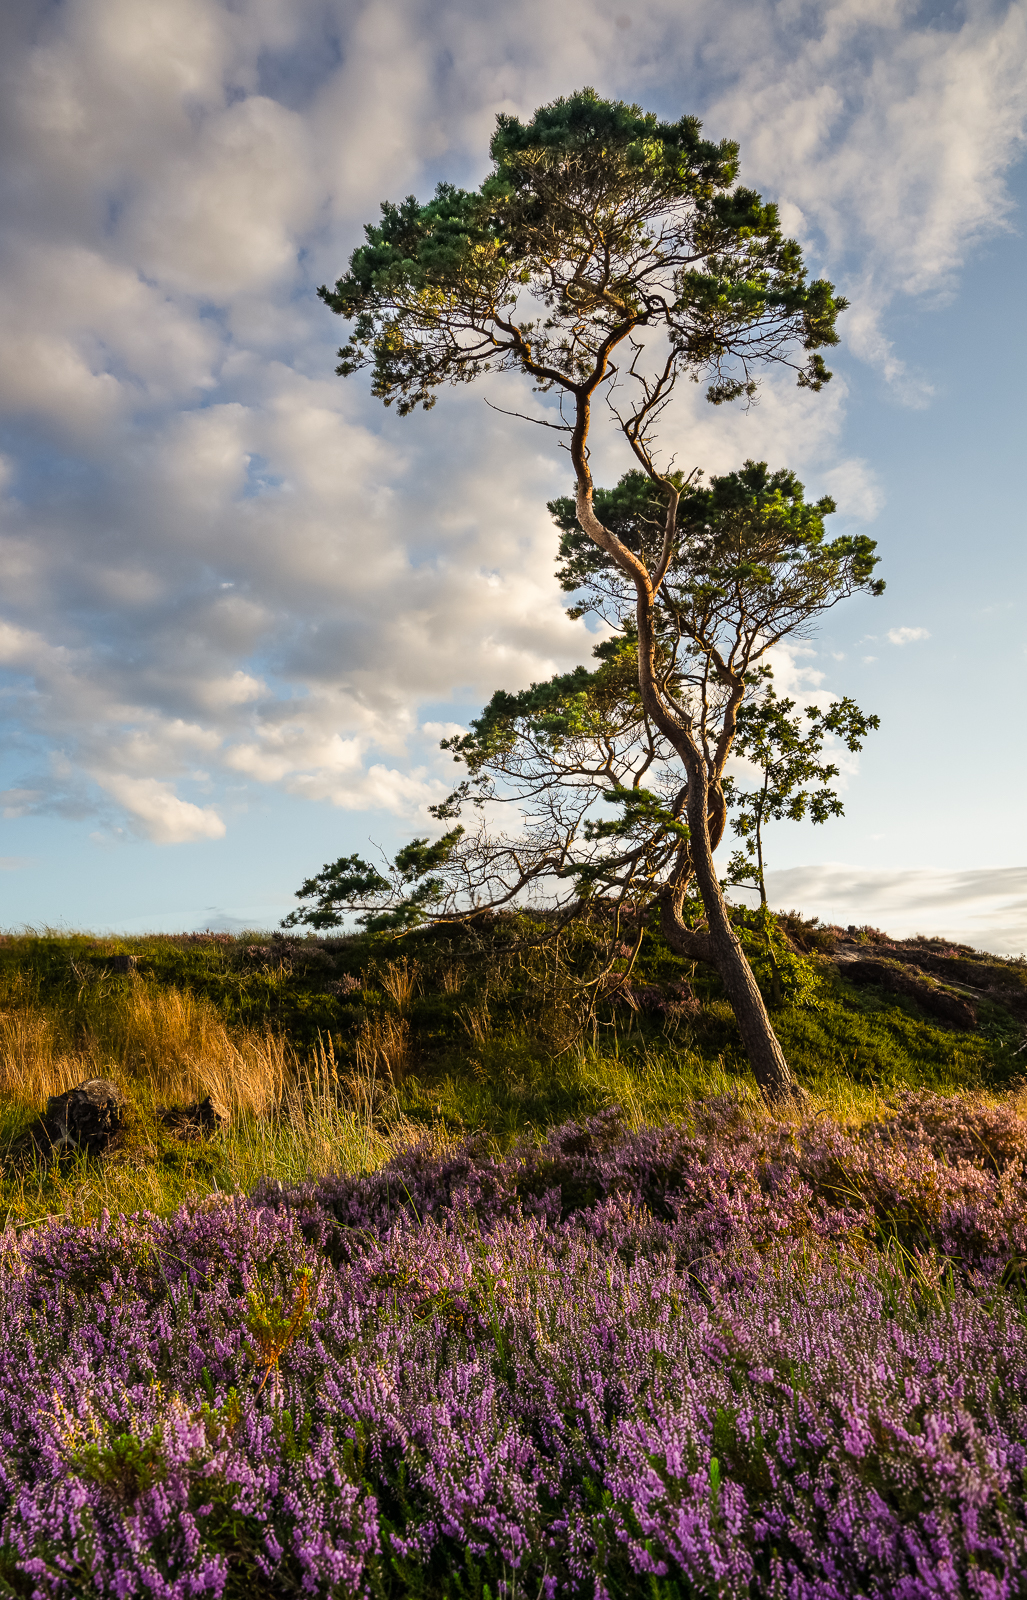 Only heather and wind pined trees. Keep it simple.